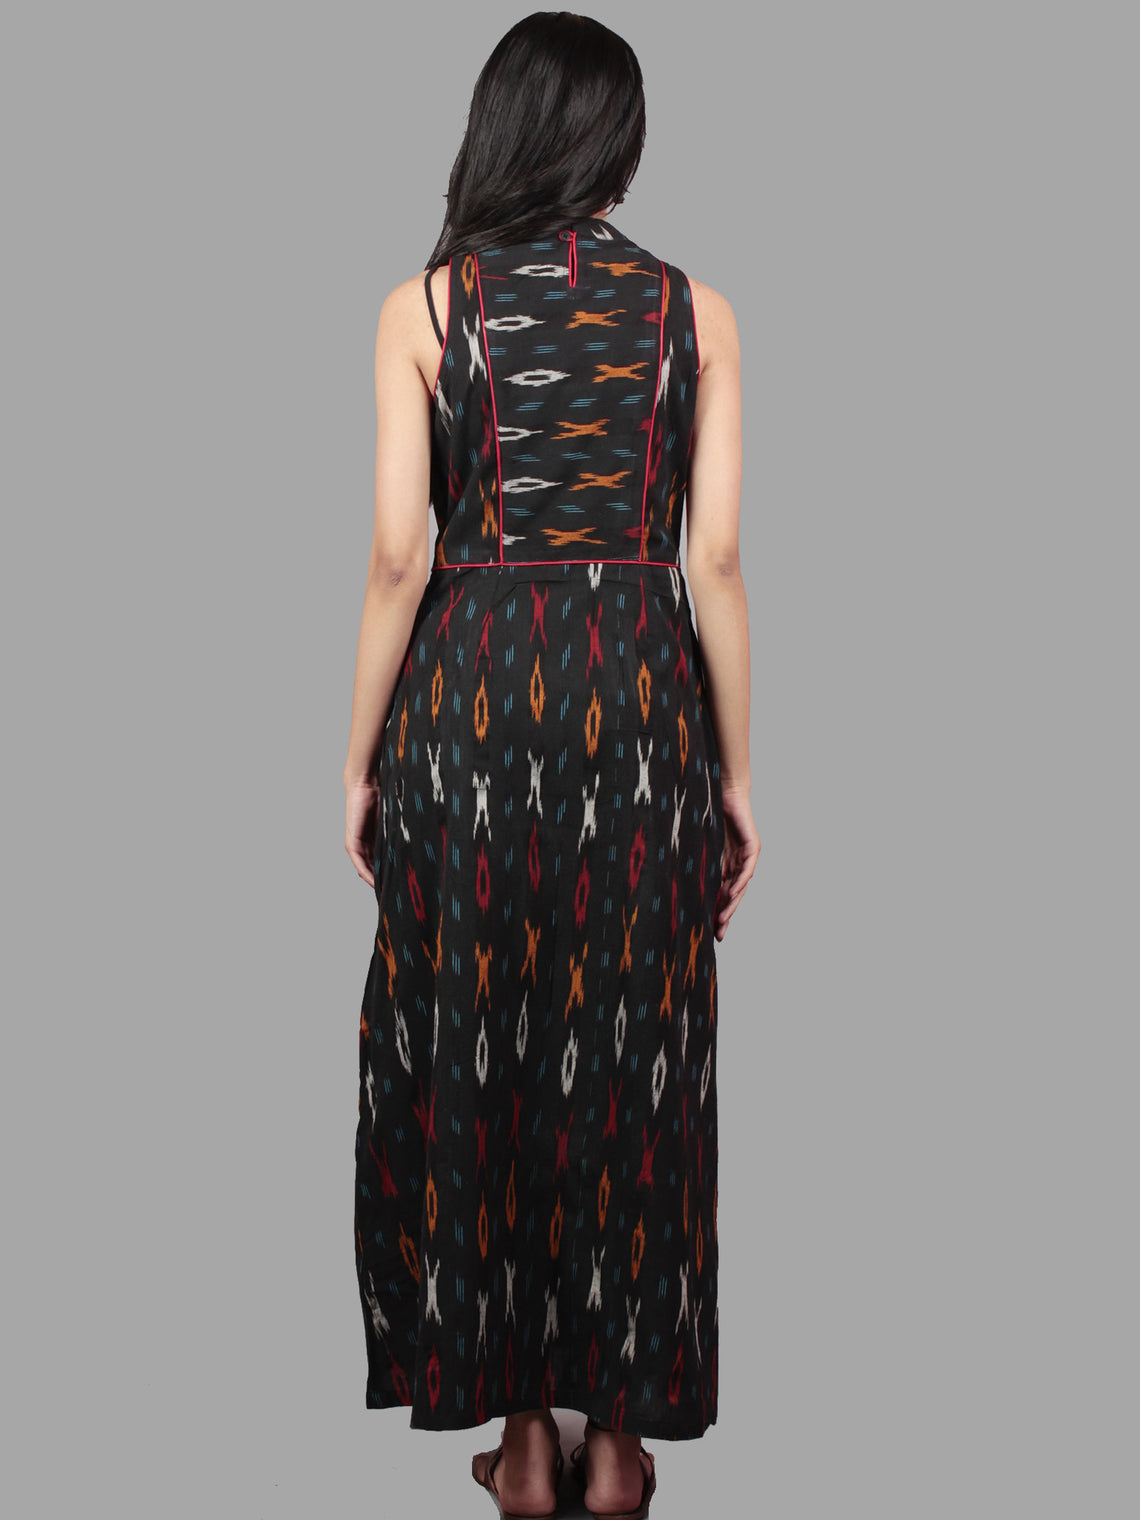 Black White Orange Ikat Long Printed Princess Line Stand Collar Dress - D40F893